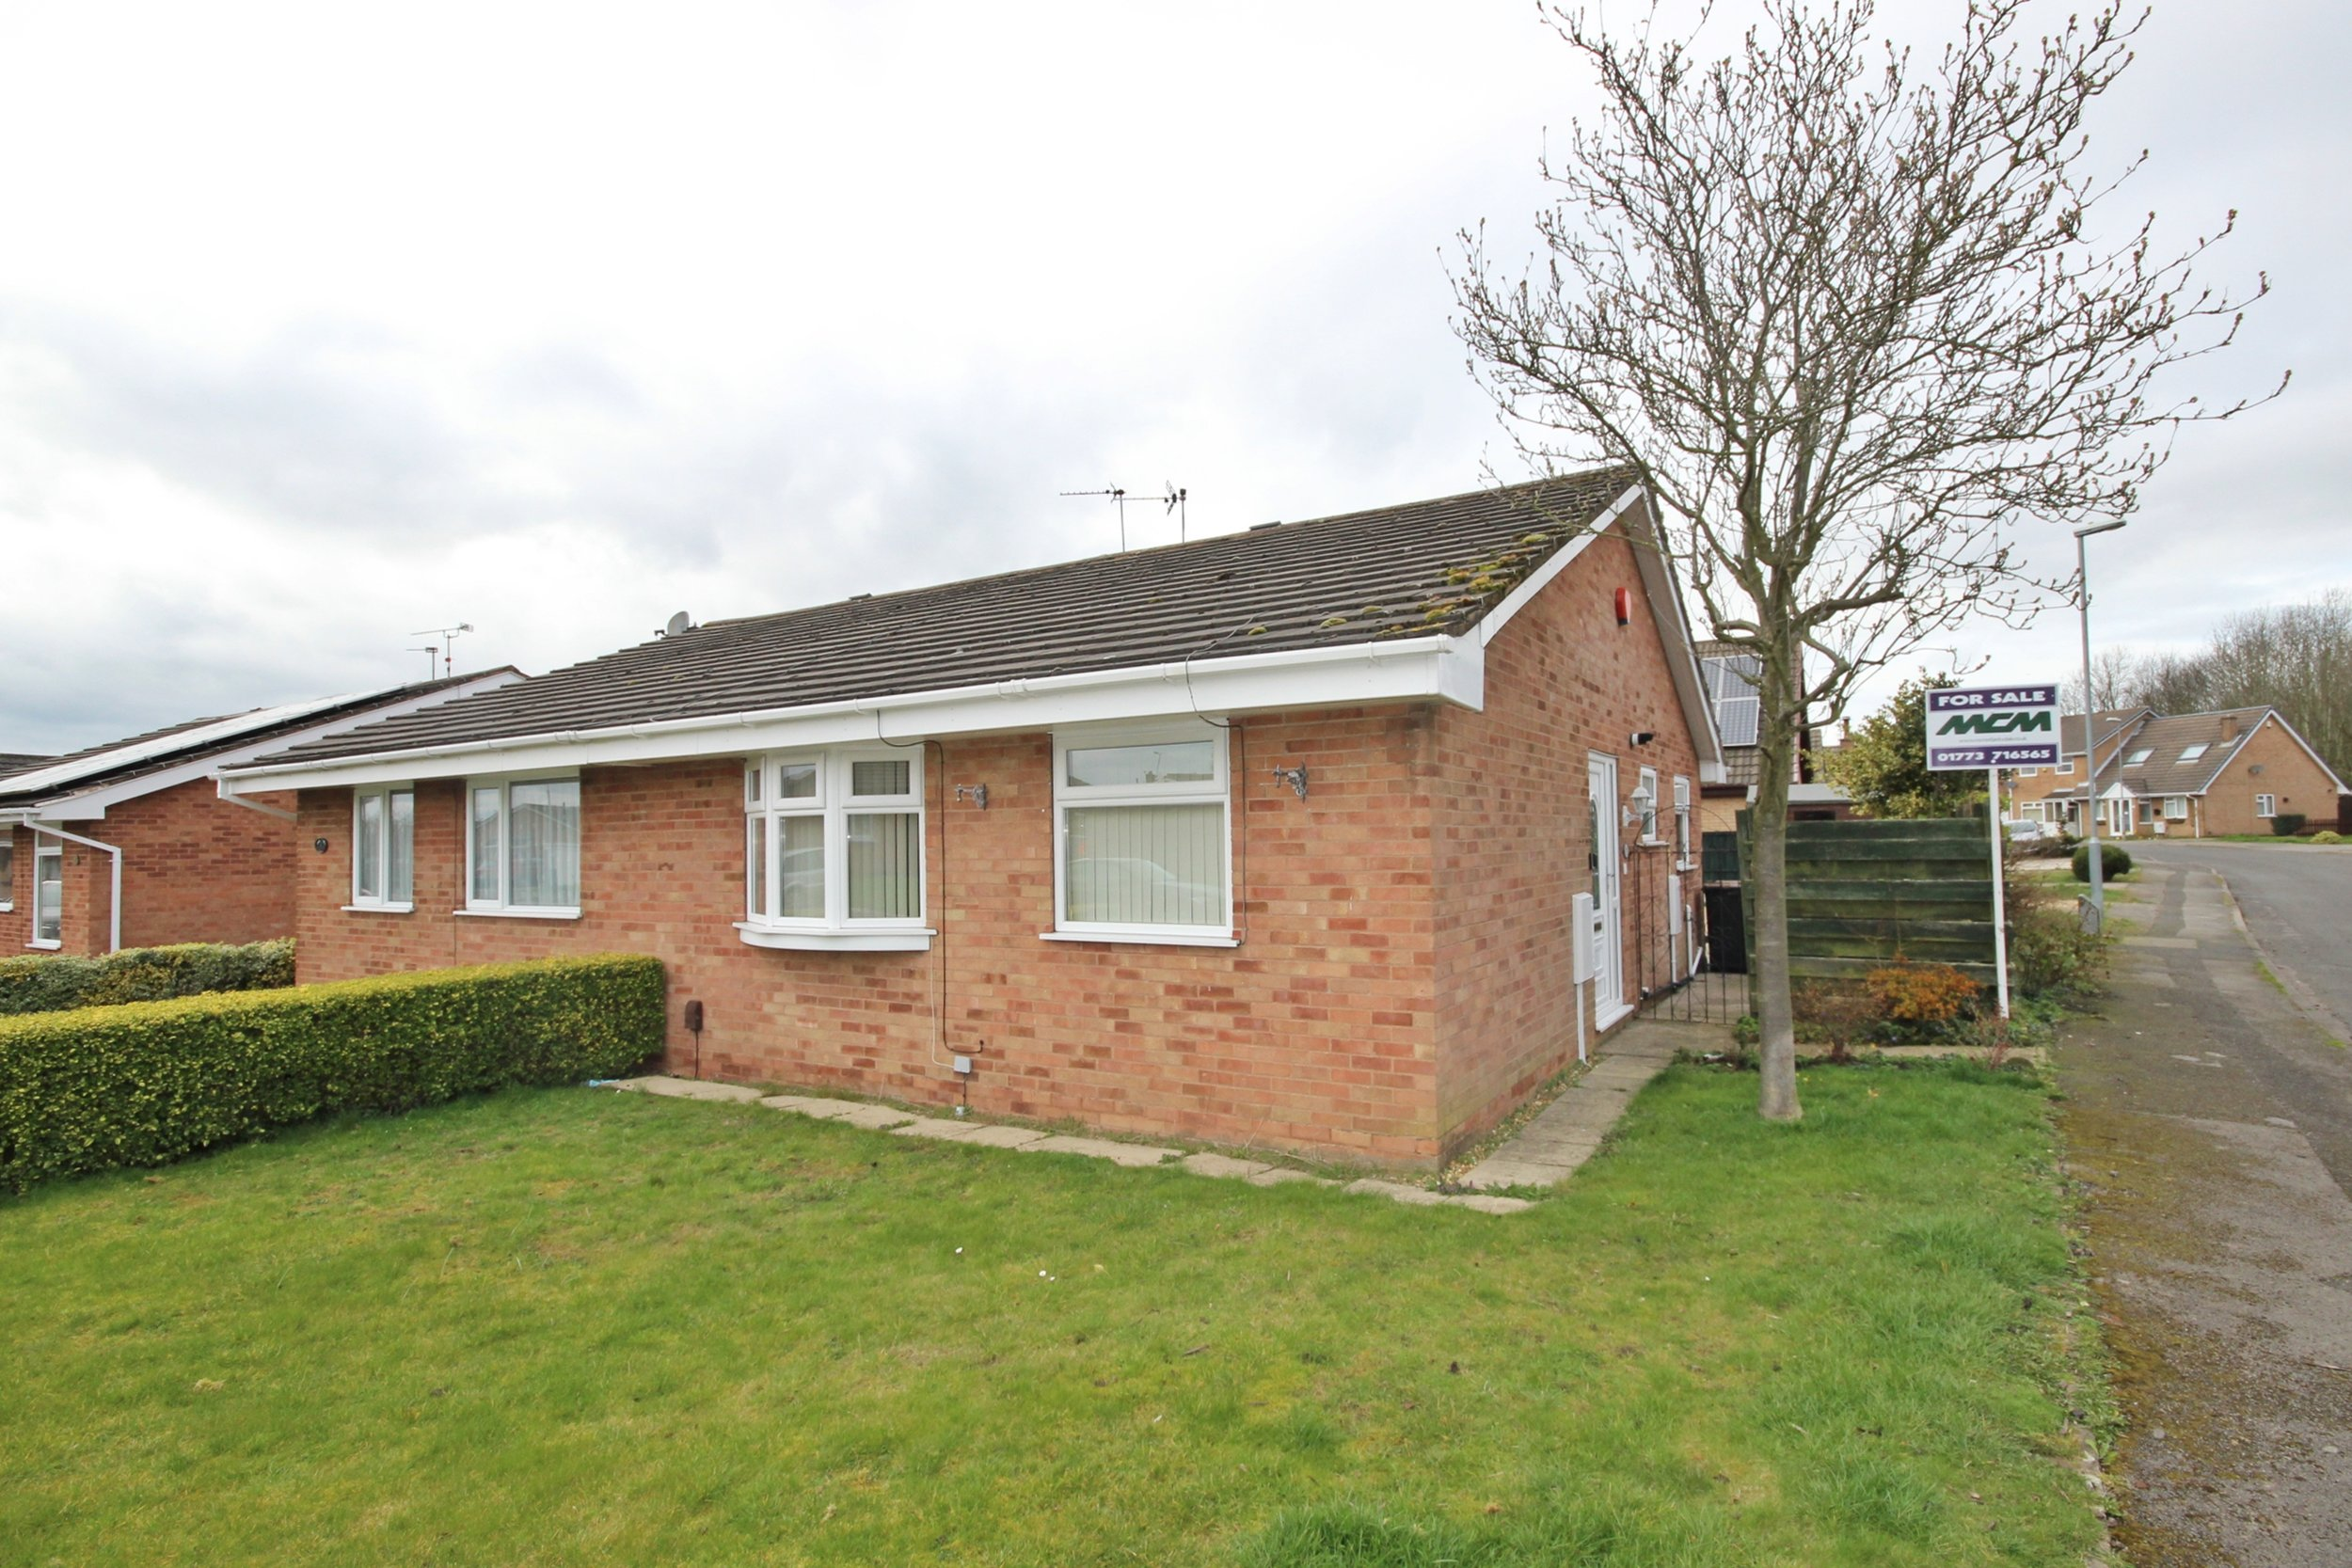 IT'S GONE! - £125,000 Royal Oak Drive, Selston, Nottinghamshire, NG16 6RJ - 2 BEDROOM SEMI DETACHED BUNGALOWNO ONWARD CHAIN! Rare to the market, this well proportioned semi detached bungalow has been well cared for and offers a spacious lounge, kitchen, two bedrooms and a three piece bathroom, plus a lovely garden to the side. EPC rating D.